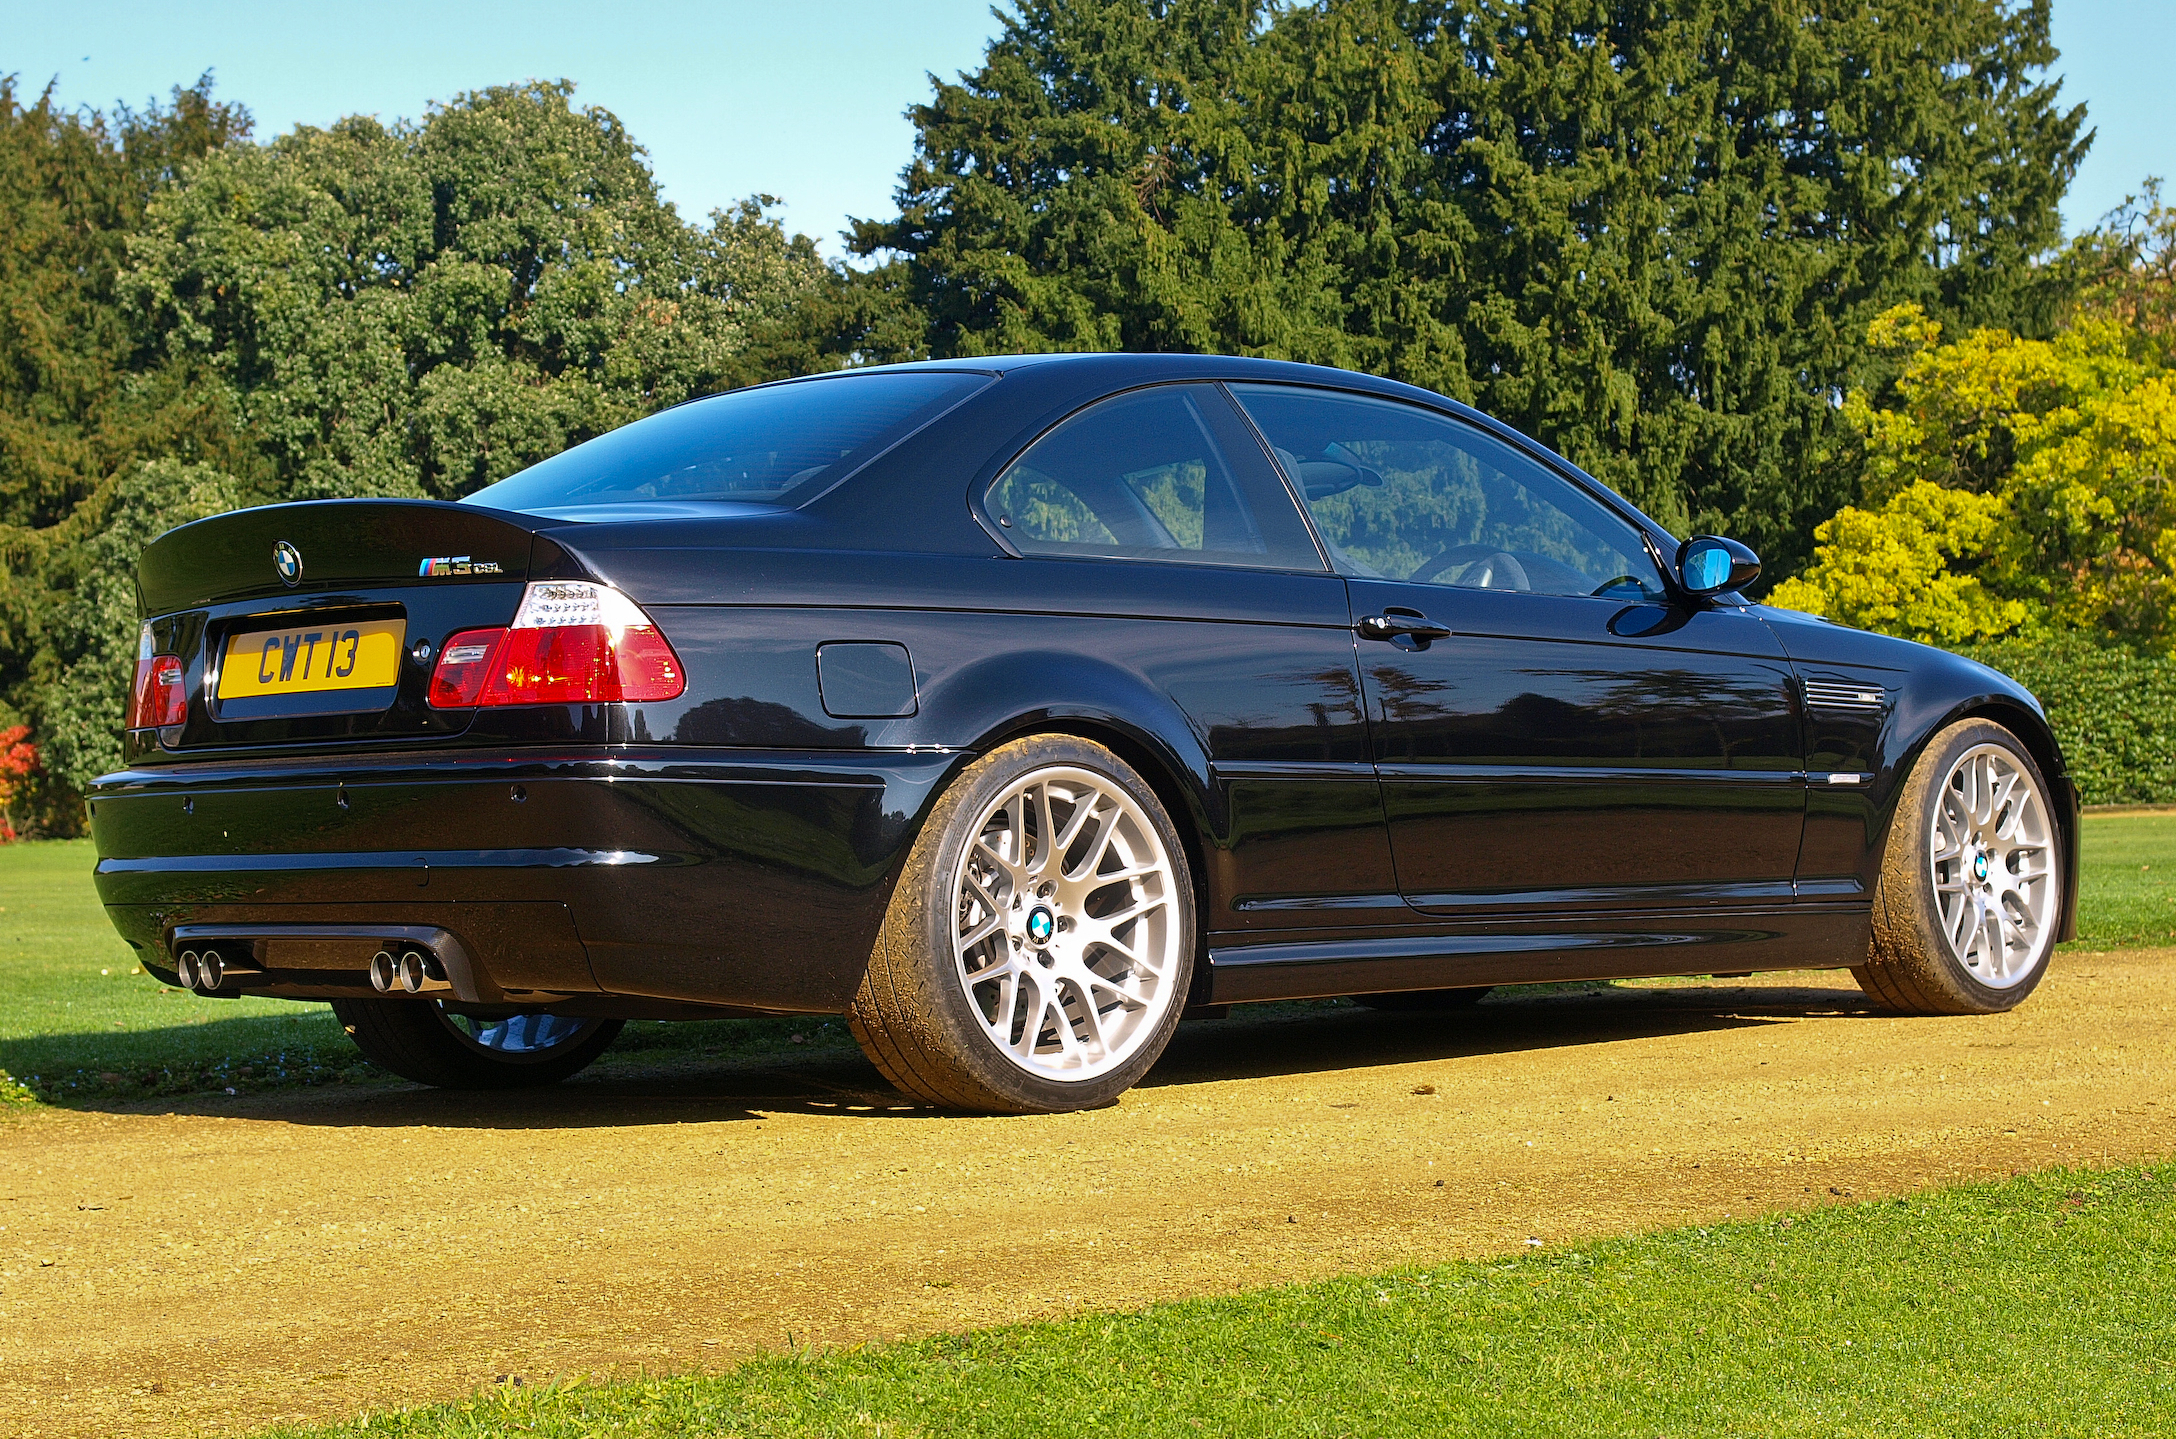 File:Black BMW M3 CSL E46 rr.jpg - Wikimedia Commons